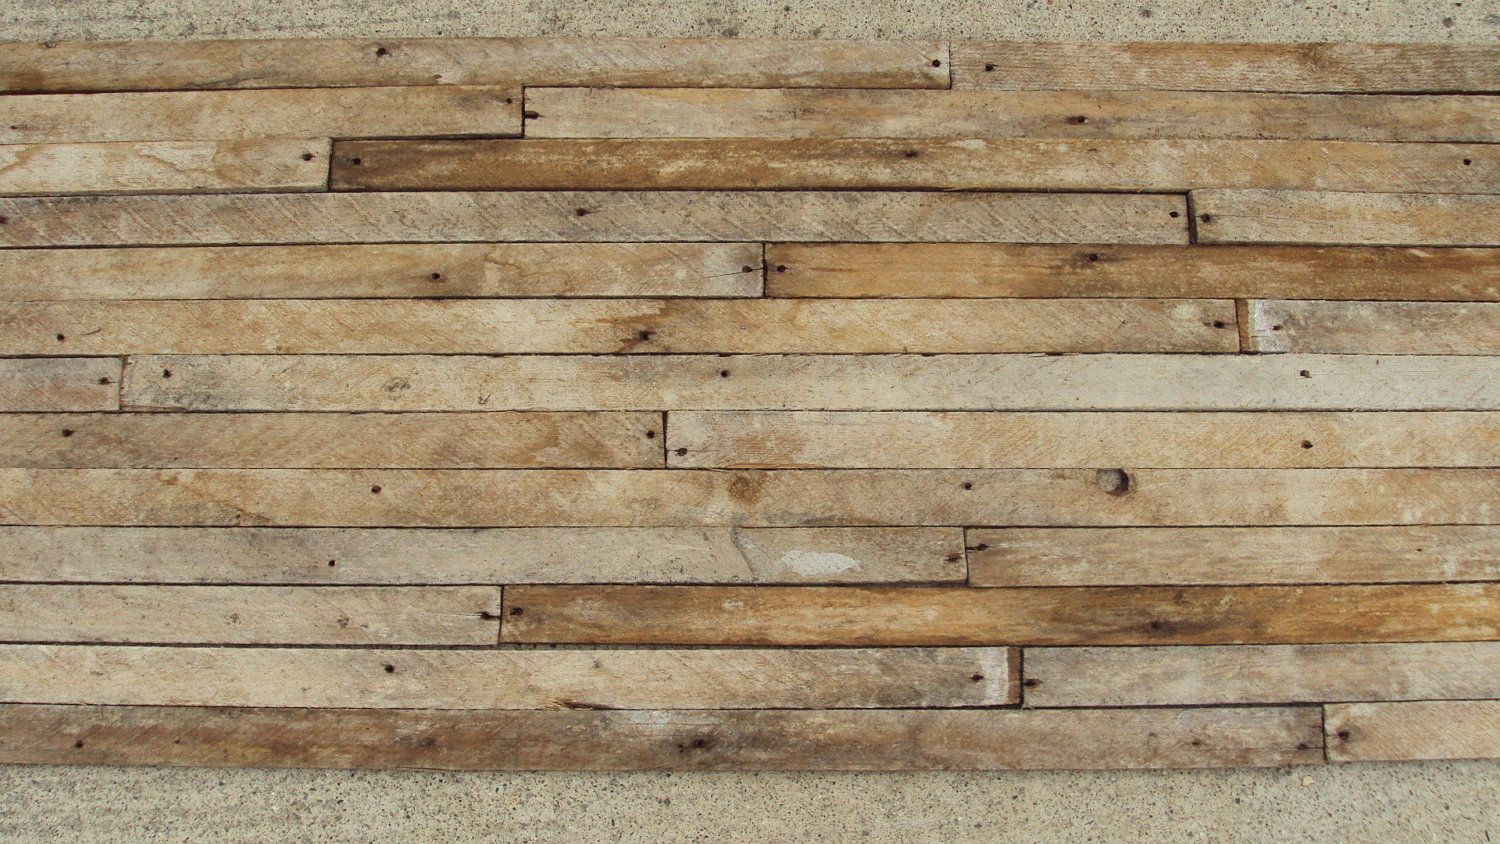 Uncategorized Reclaimed Timber Boards reclaimed wood lathe 100 plus years old fences walls and getting ready to put up a new fence but the boards are